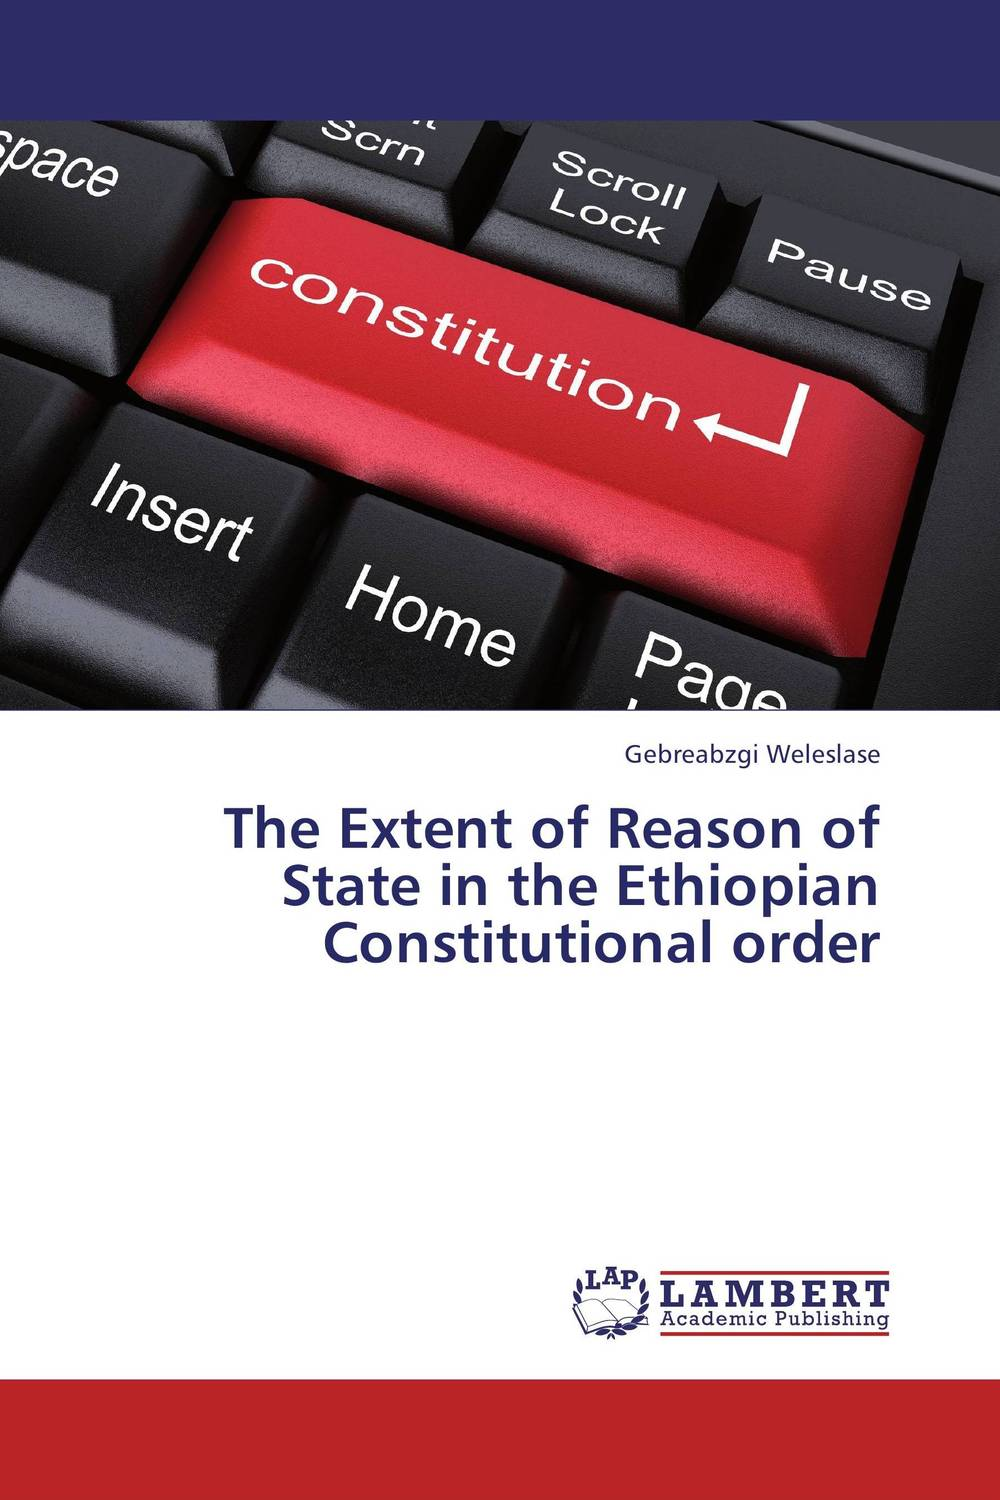 The Extent of Reason of State in the Ethiopian Constitutional order developmental state and economic transformation the case of ethiopia